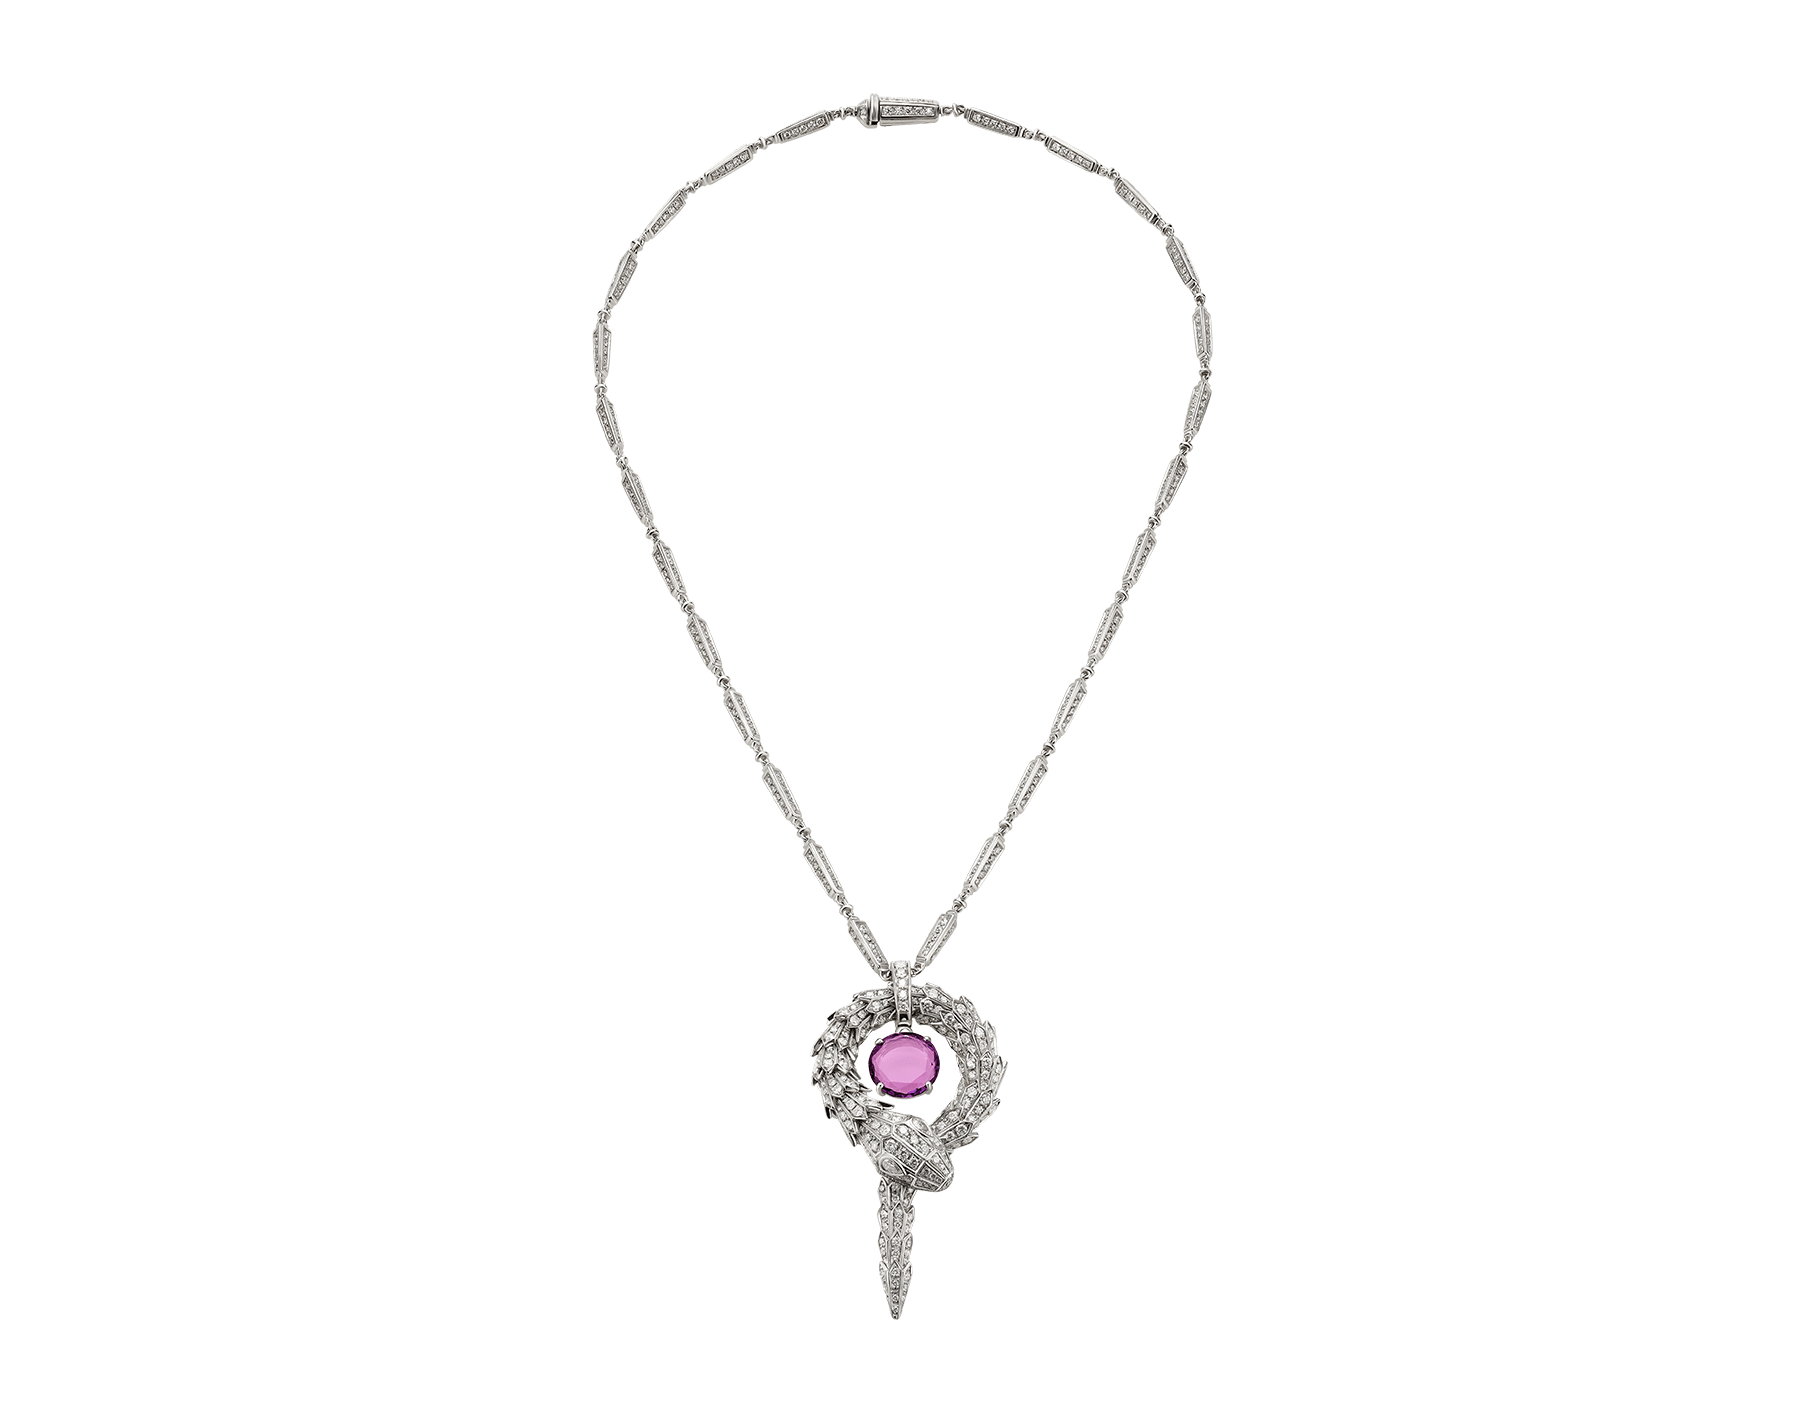 Serpenti small pendant in 18 kt white gold with amethyst and pavé diamonds. 354087 image 1